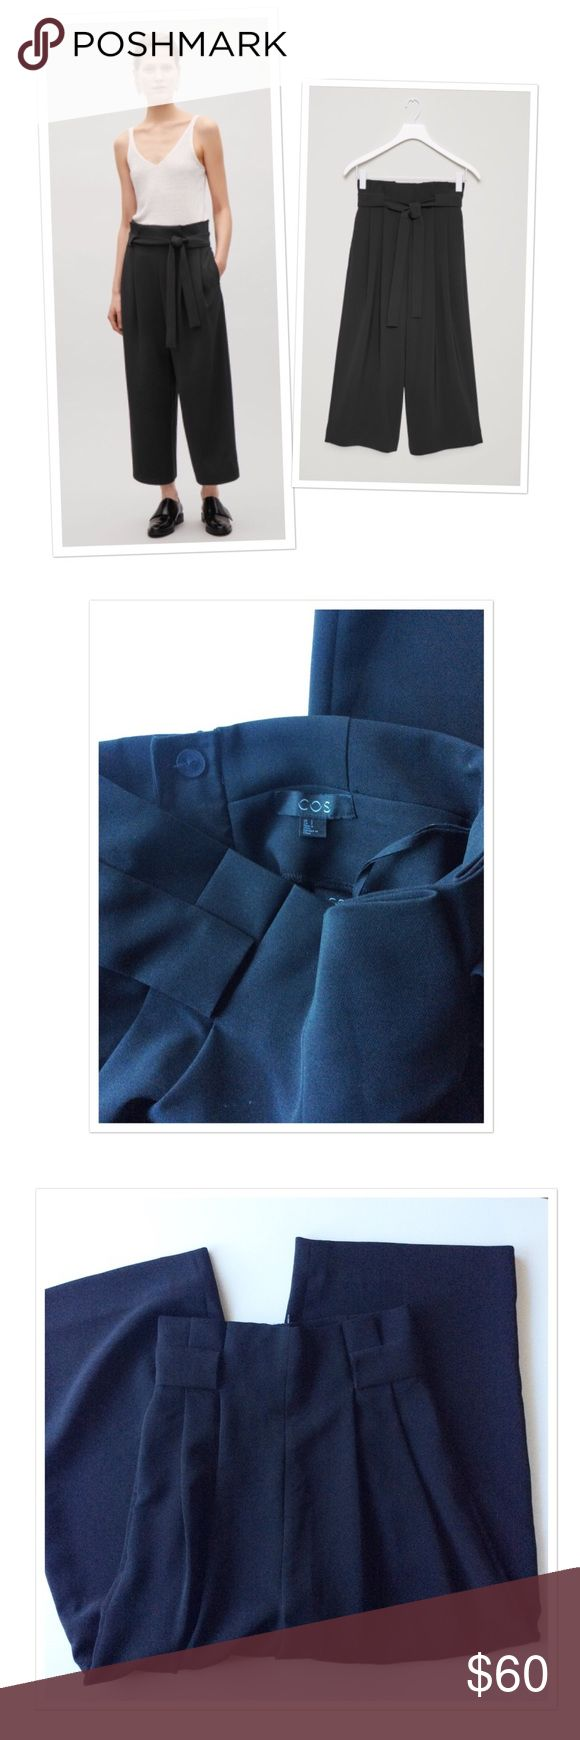 "Cos wide waist pleated trousers pants Cos wide waist pleated pants. Black. The pics turned out to be a bit bluish, but they are black. They come without the tie. I always used a belt wearing them. Pleated waist. Tunnel belt loops. Loose, fluid fabric. In-seam pockets. 92% polyester, 8% elastane. Worn a handful times and in a great condition. Inseam: 22"" (Culottes style), waist: 13"", rise: 15.2"" (dropped crotch) COS Pants"